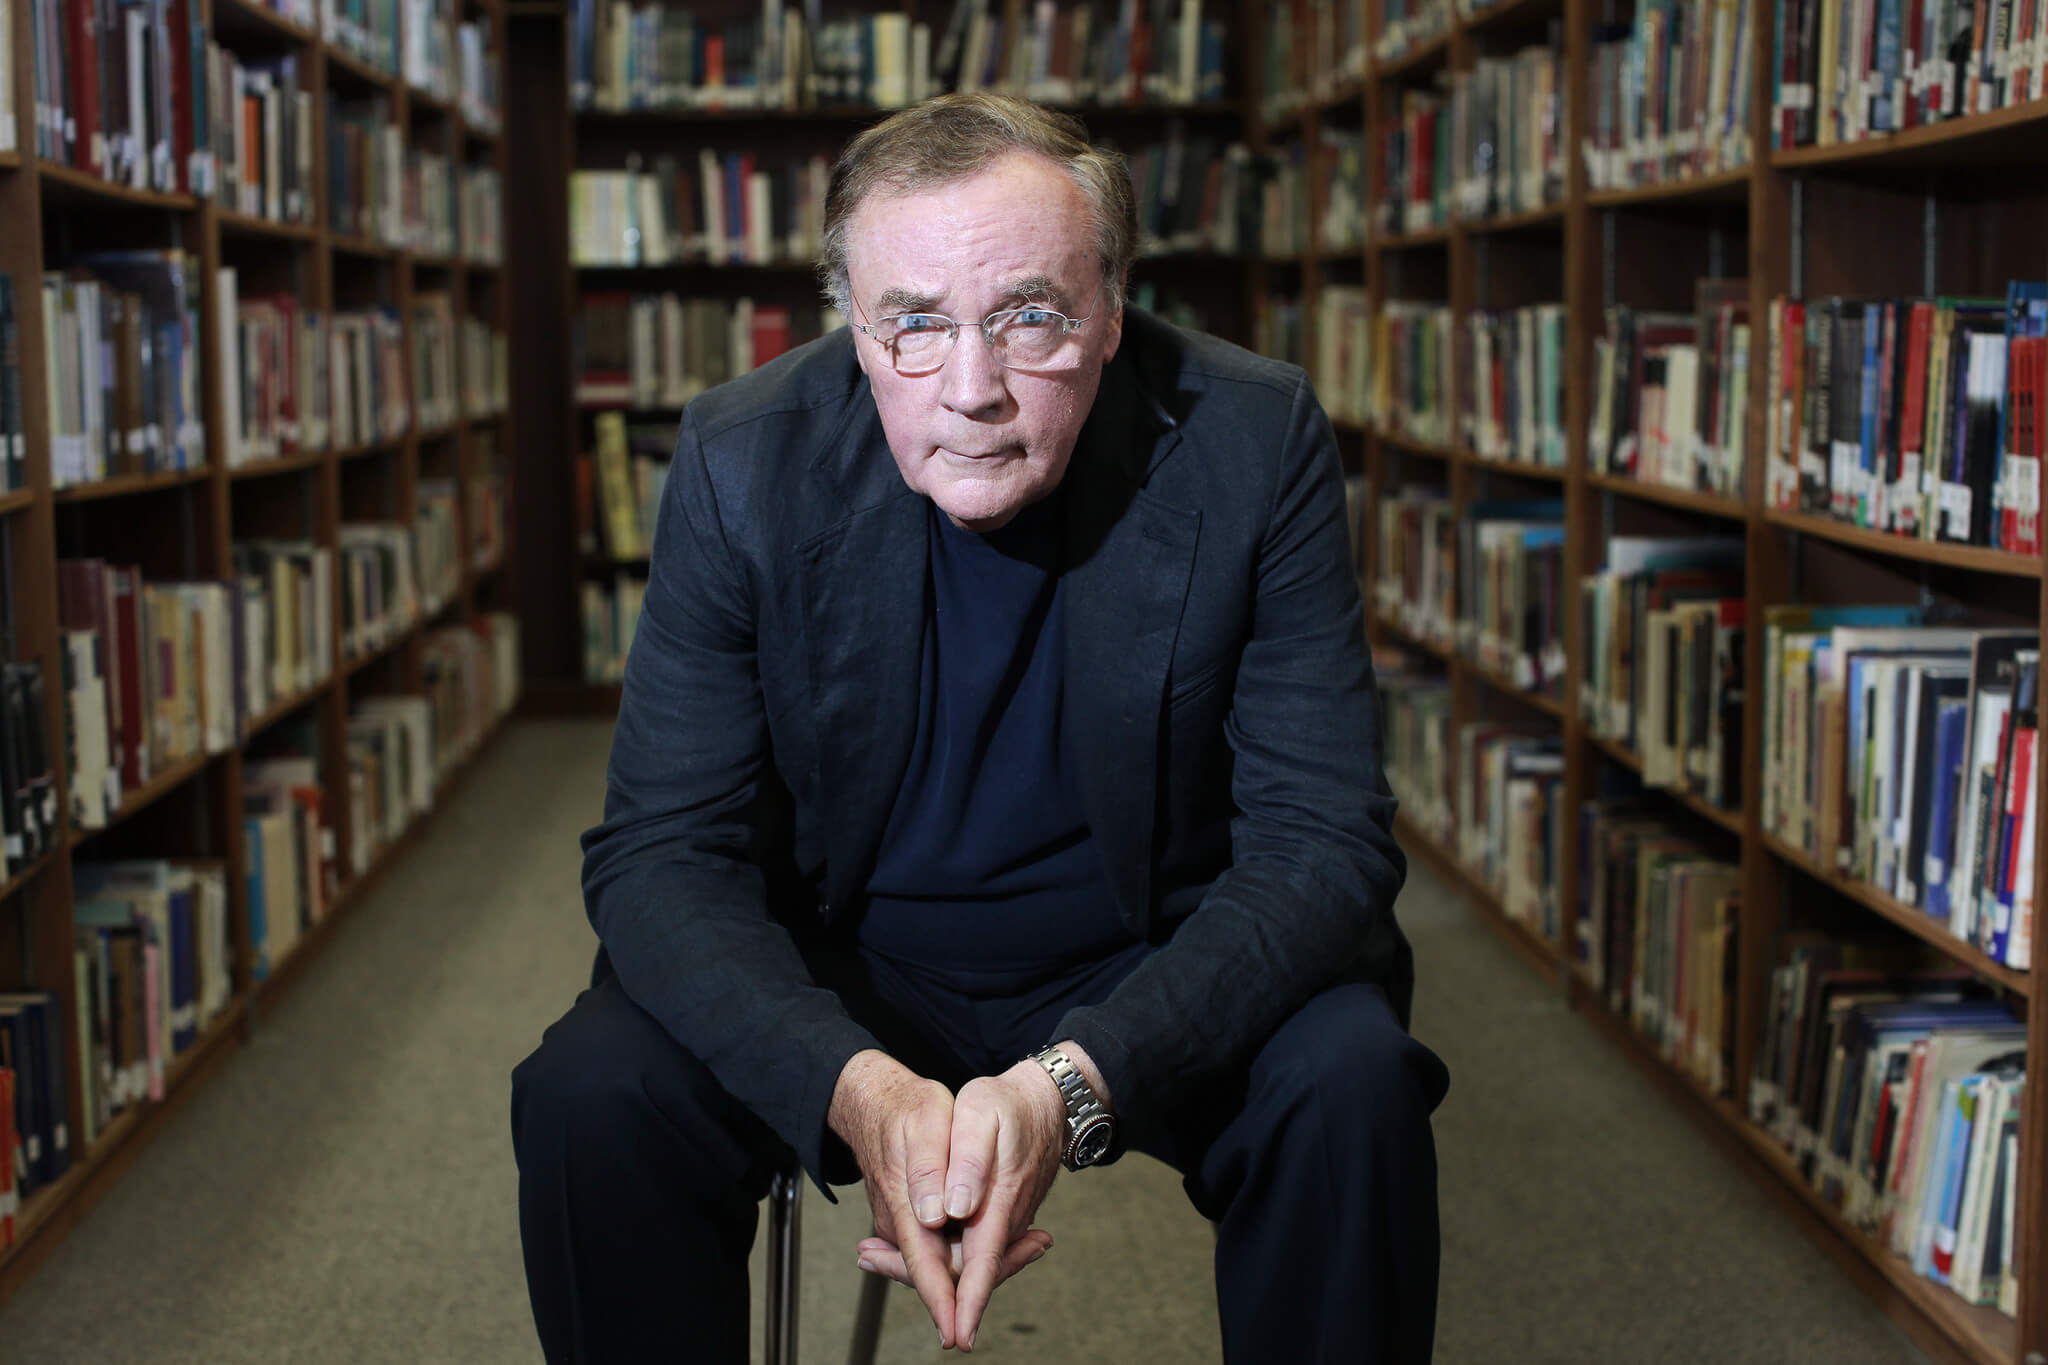 Stop The Presses: James Patterson Cancels His Murder of Stephen King ...